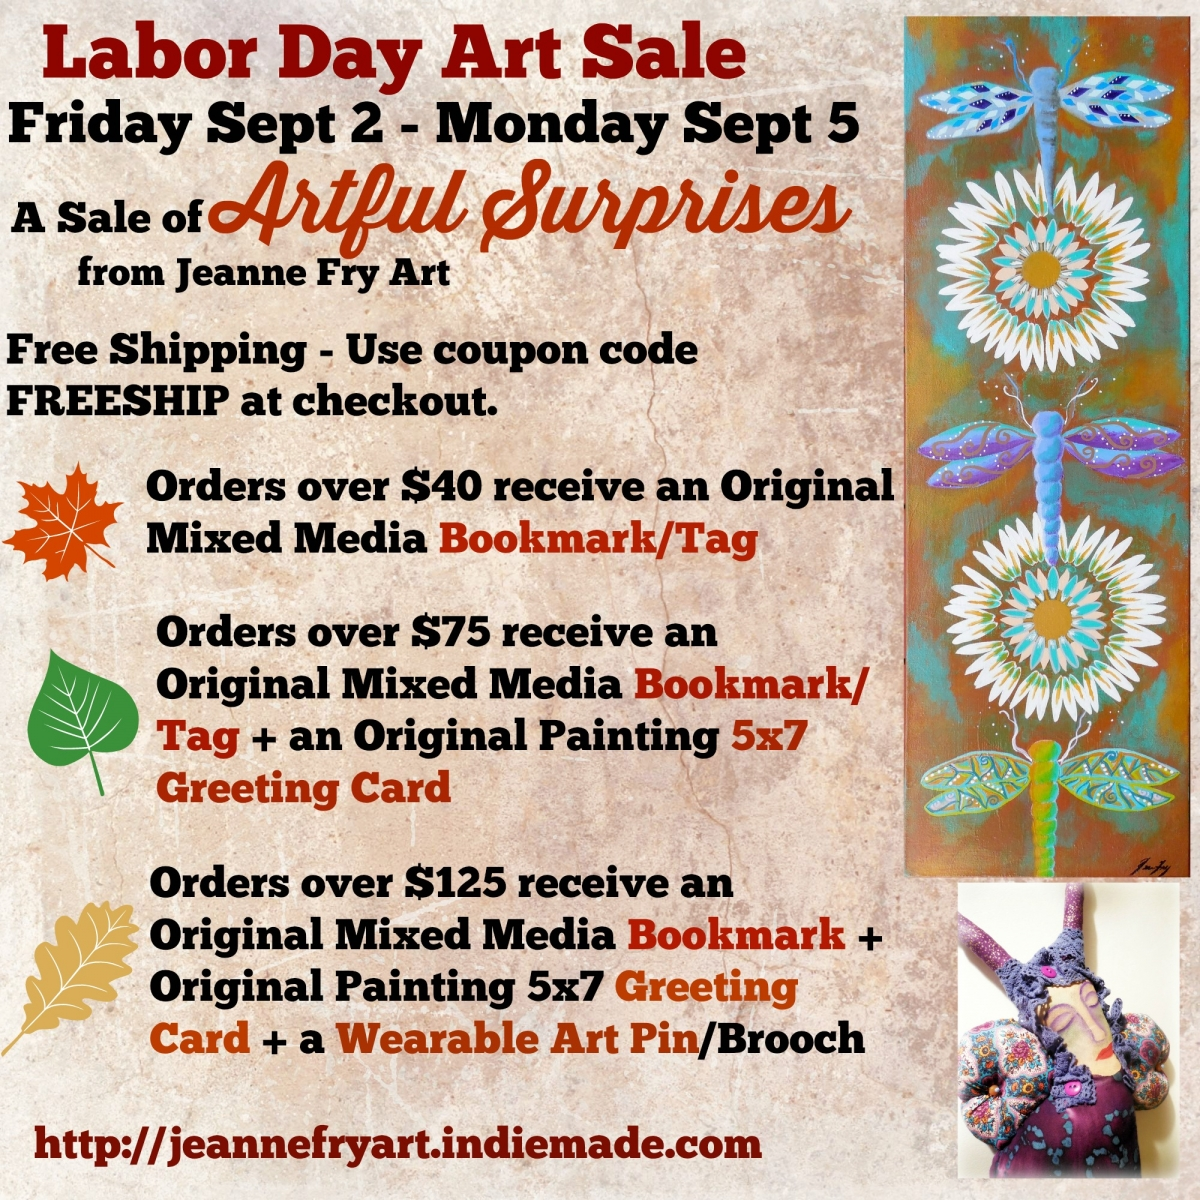 Labor Day Art Sale at Jeanne Fry Art